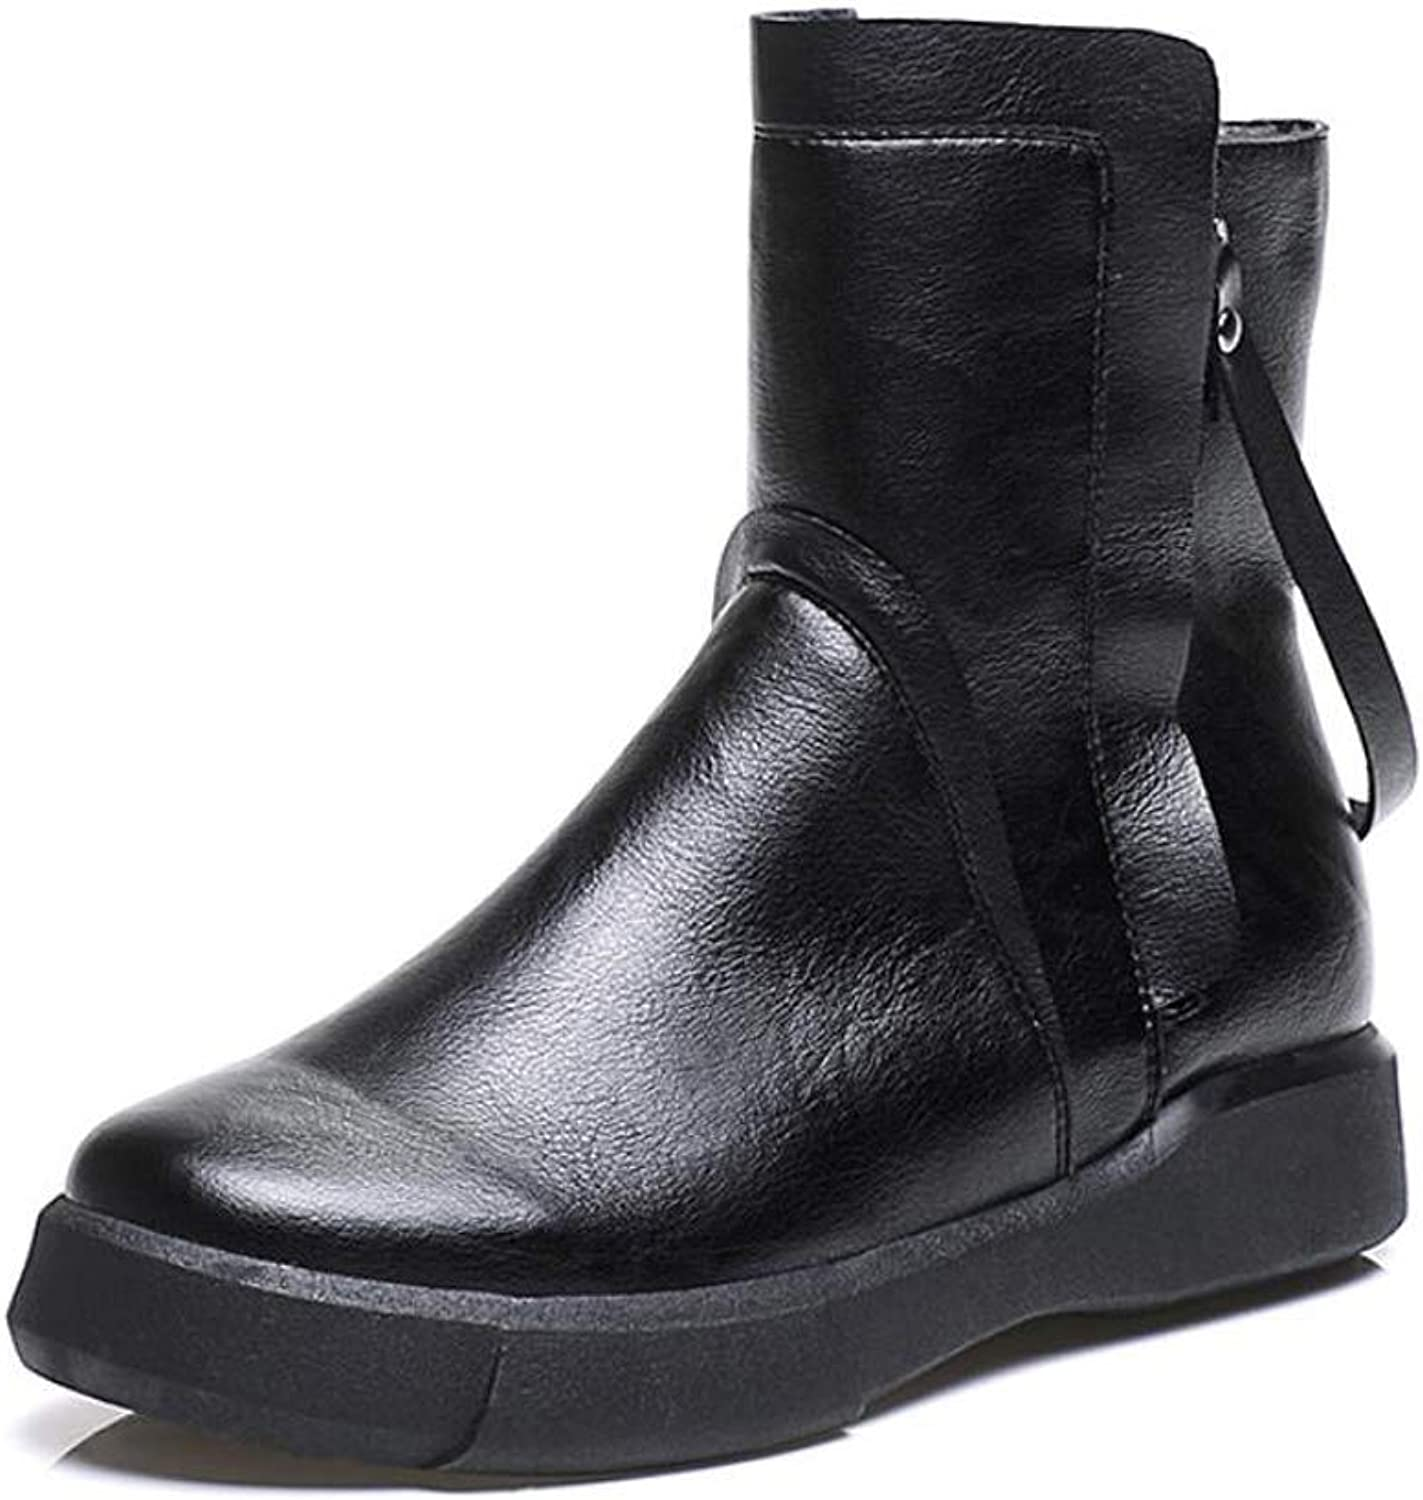 Womens Boots shoes Autumn Flat Heel British Style Casual Retro Boots